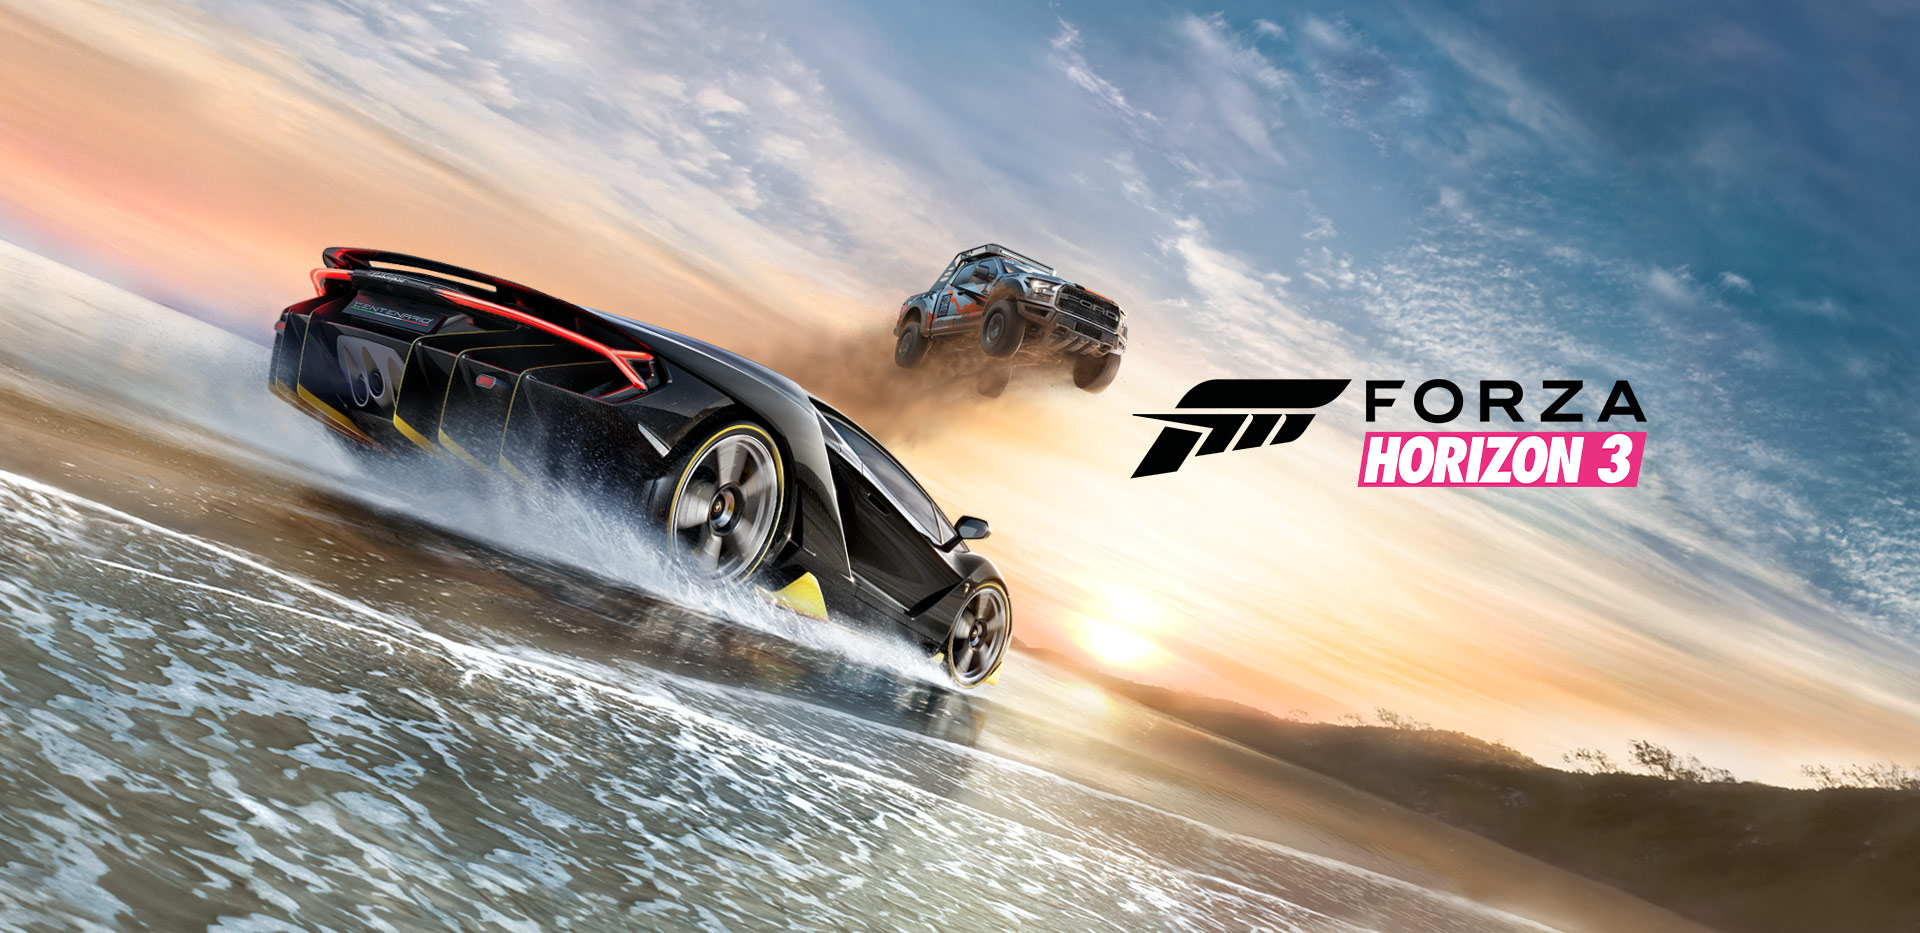 Xbox One Forza Horizon 3 : Forza horizon for xbox one and windows